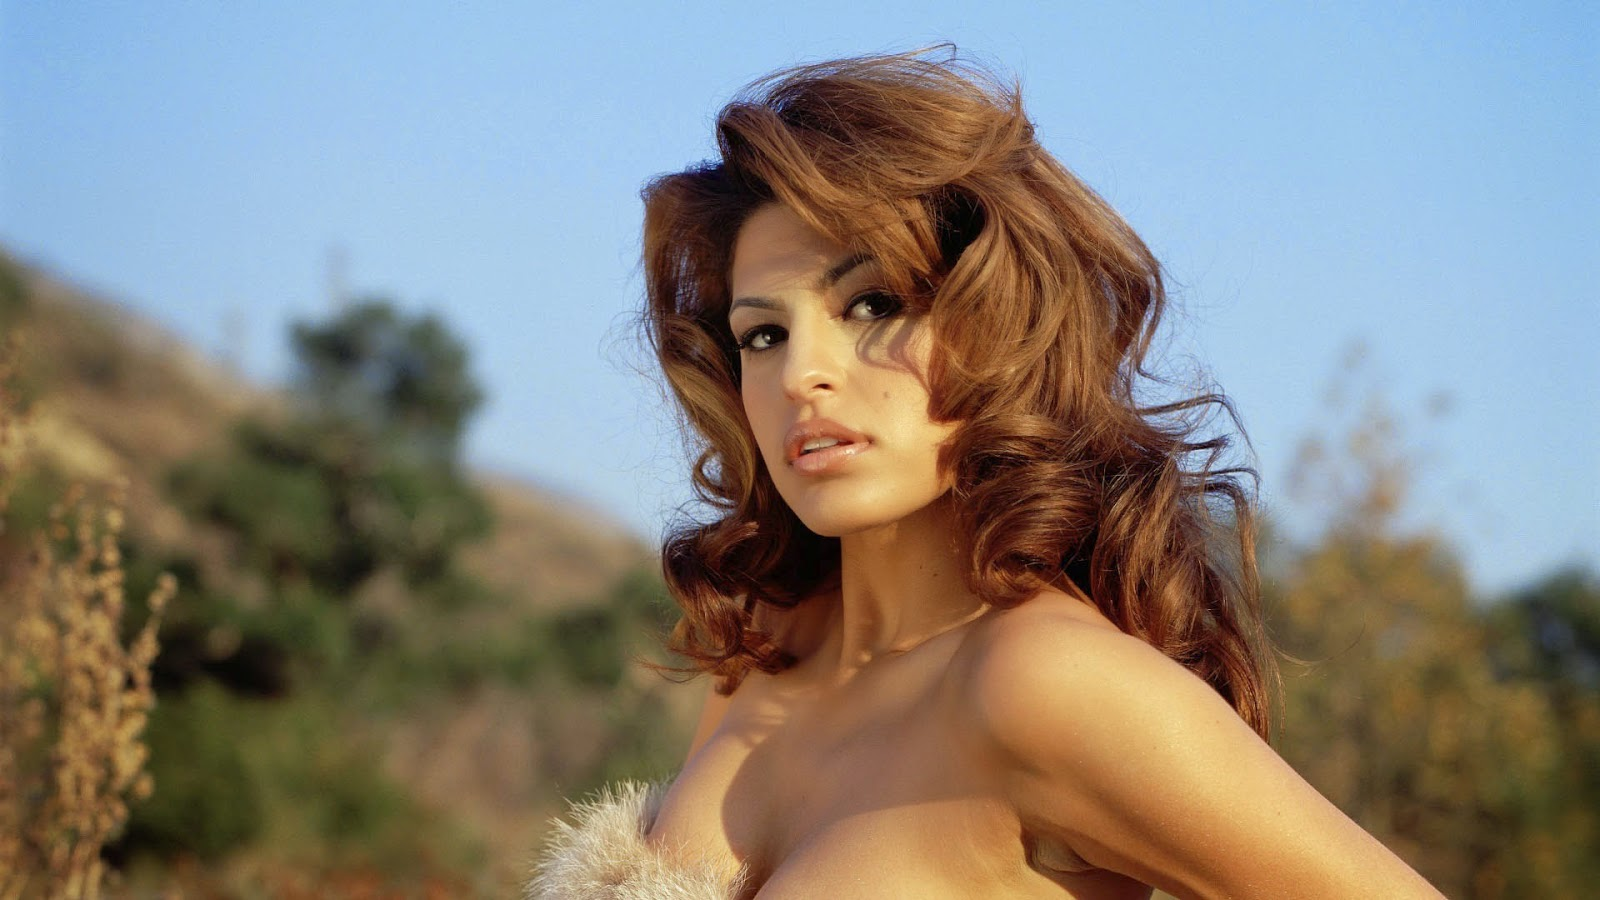 Eva mendes hot pics of hollywood actress free